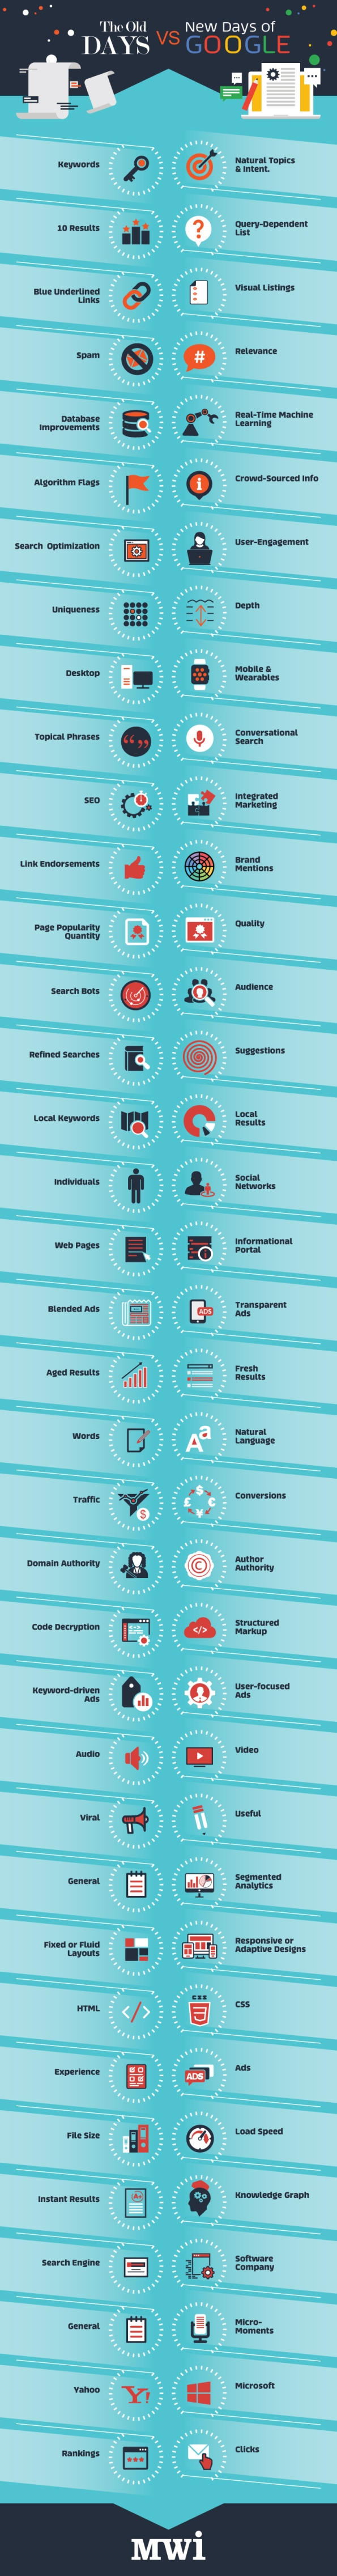 old vs new seo infographic